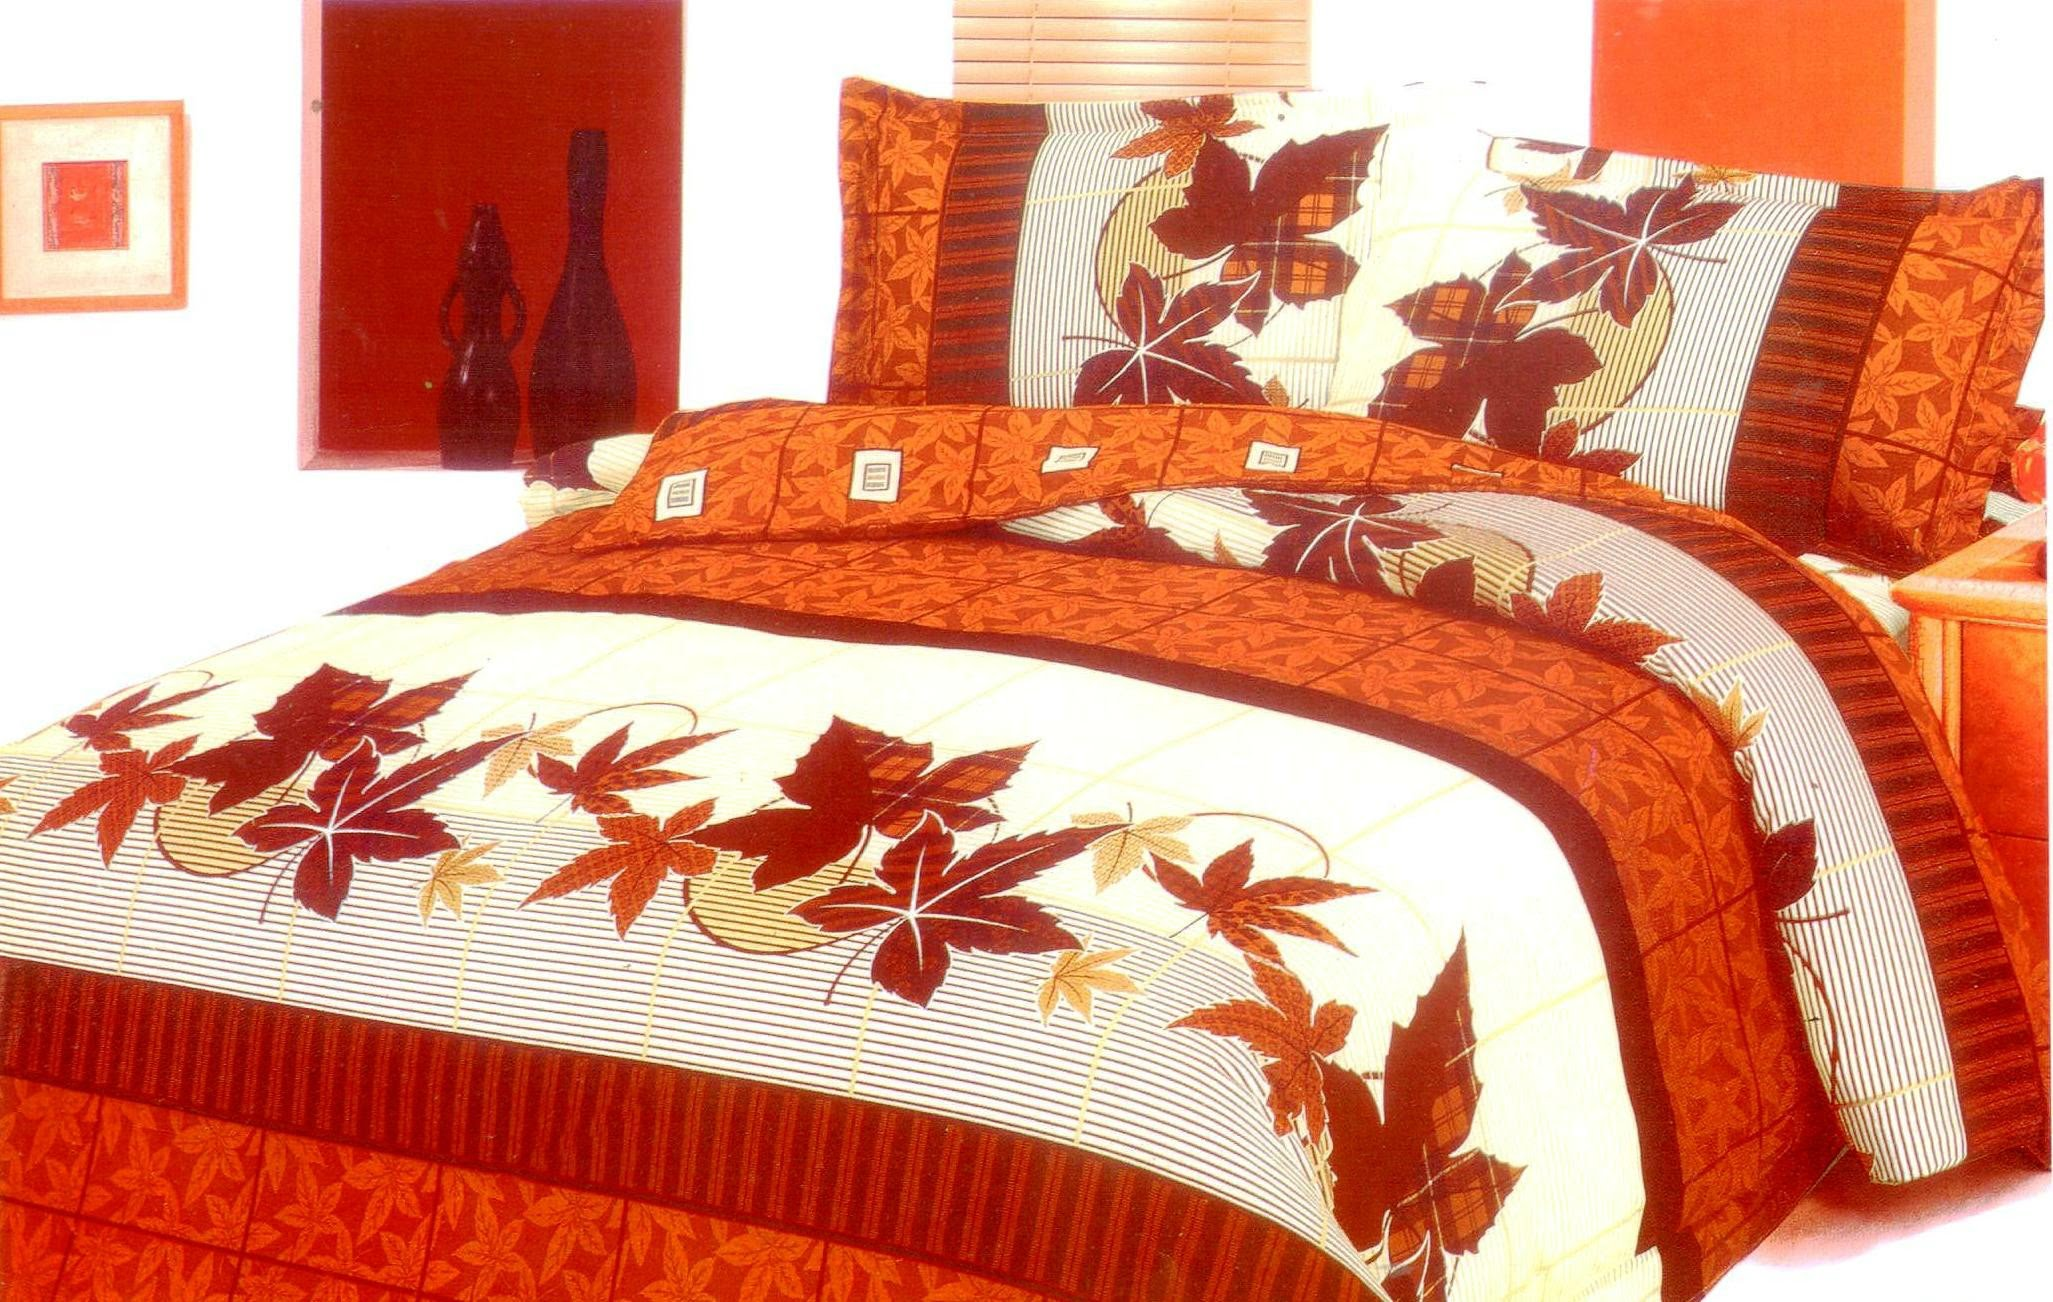 Stylish bed sheets | bed sheets and blankets - youtube usdupph